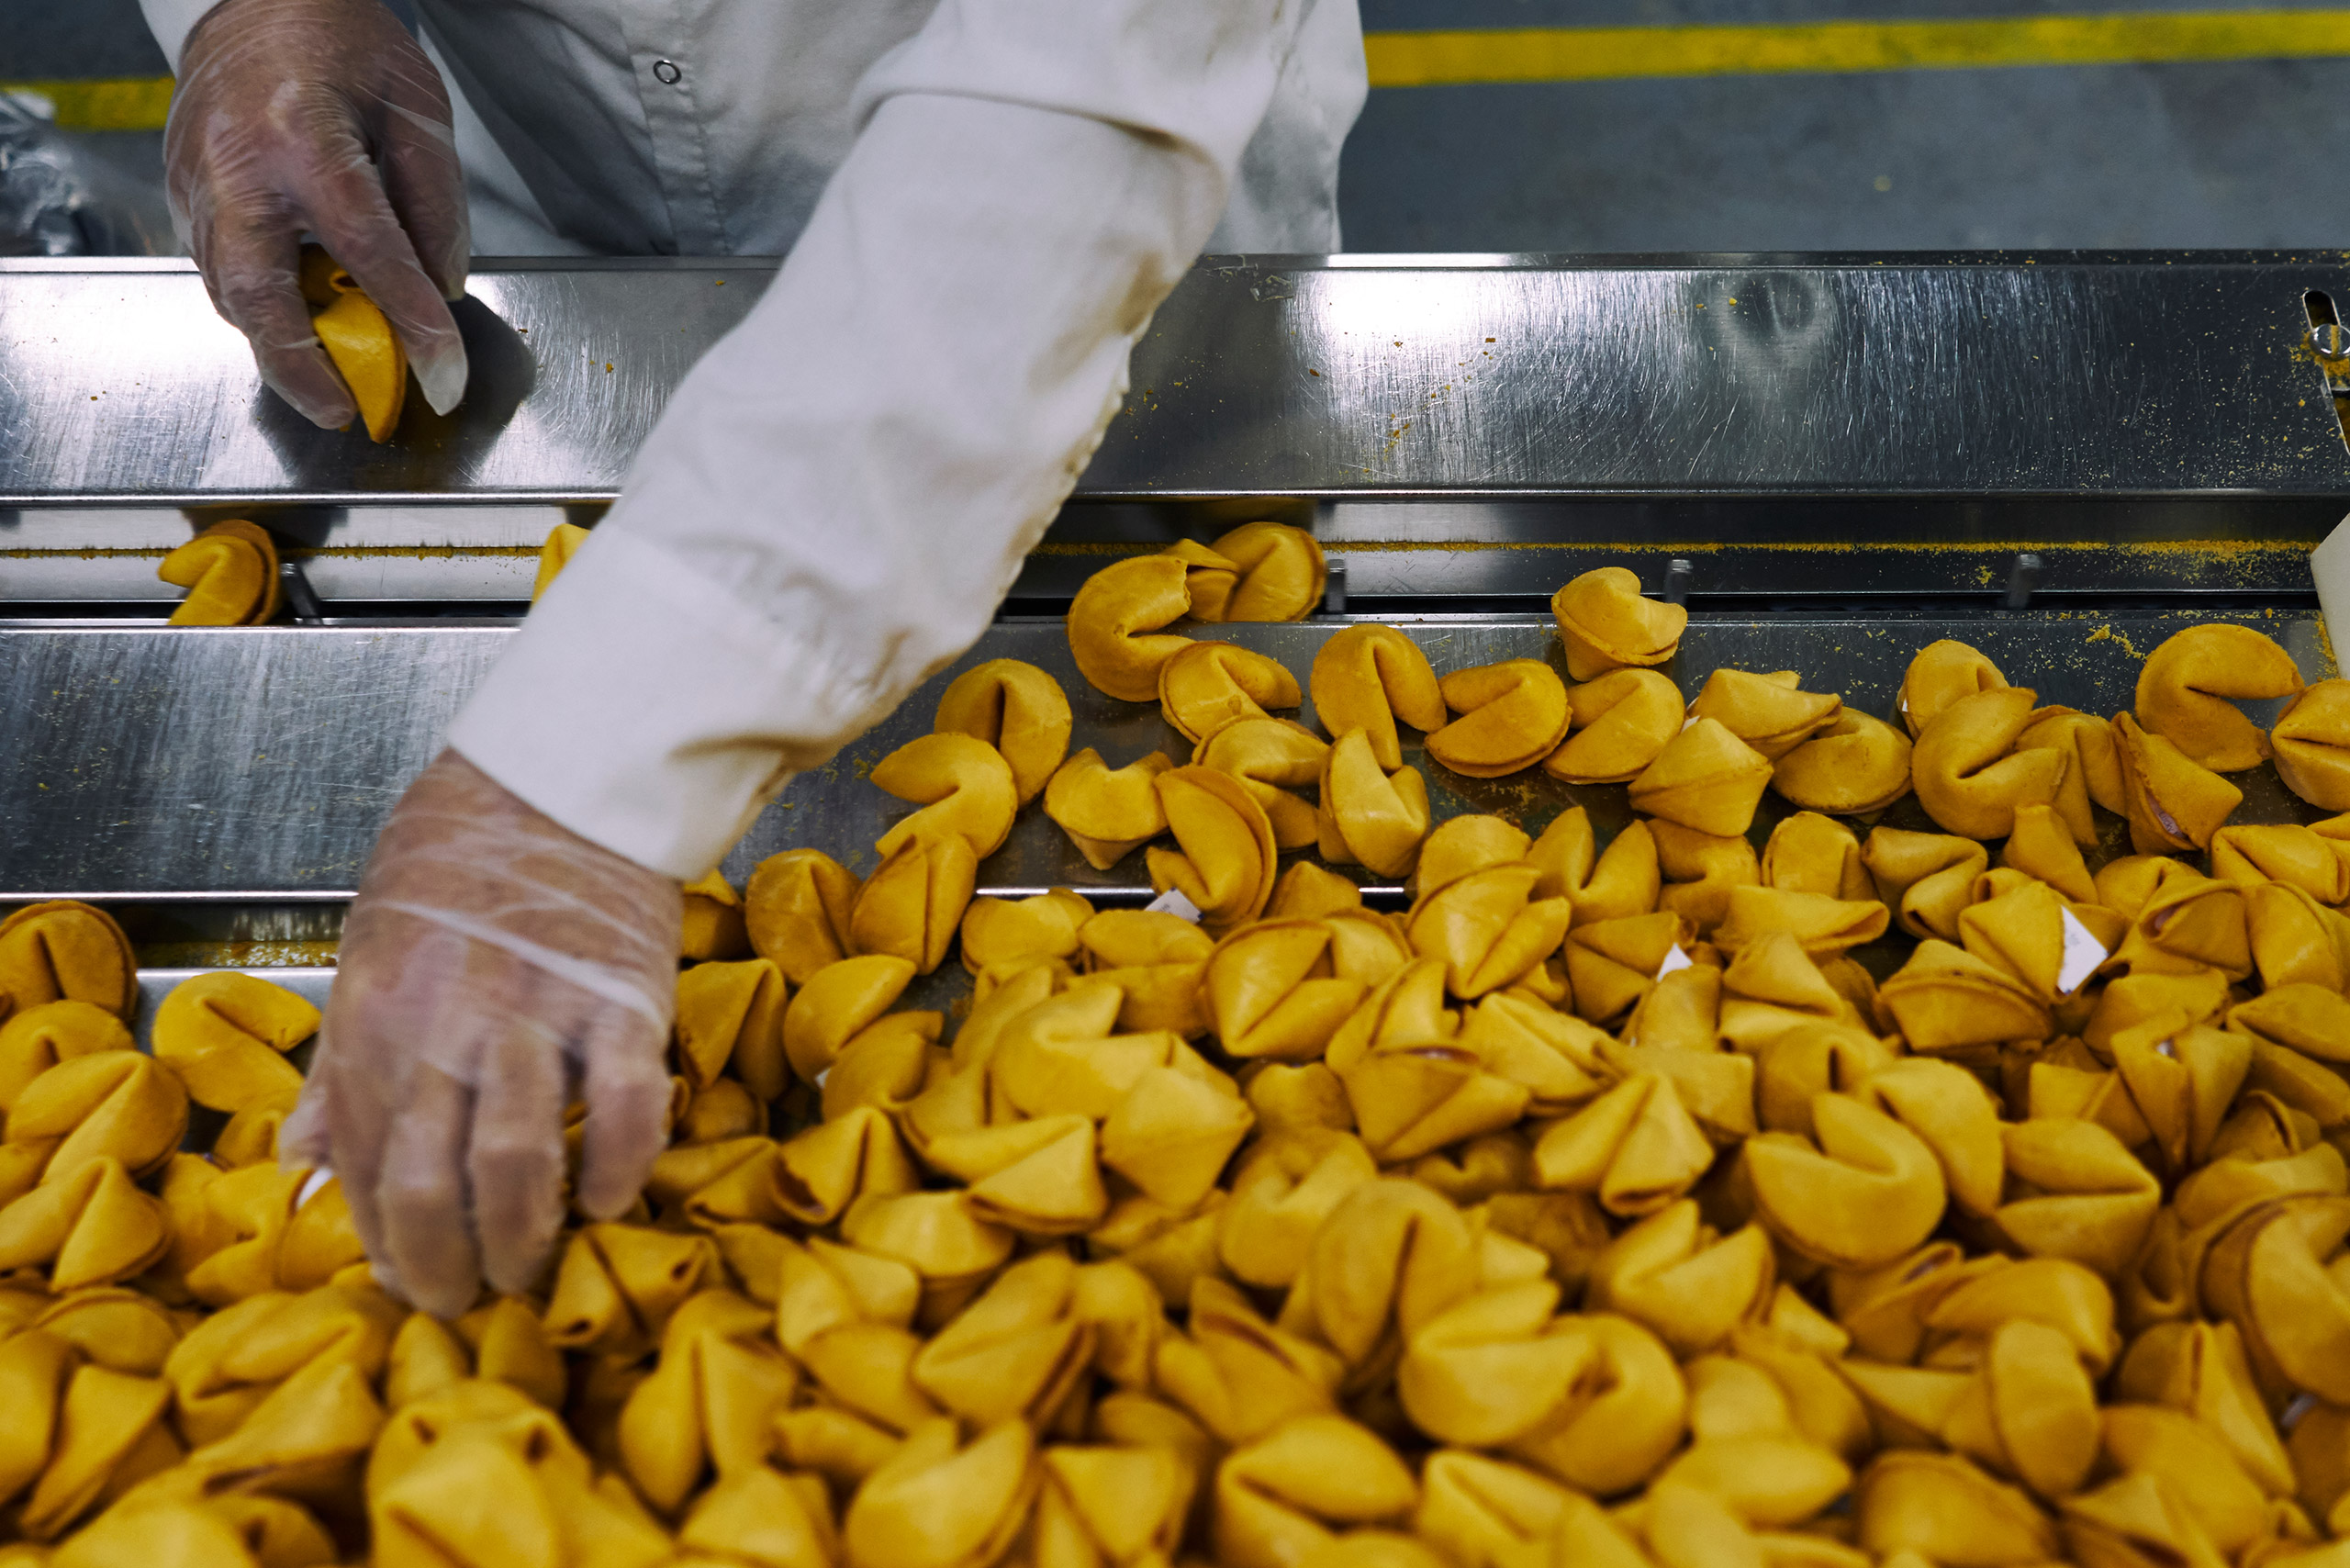 Inside the fortune cookie manufacturing plant of Wonton Food Inc. Queens, N.Y. Jan. 18, 2017.